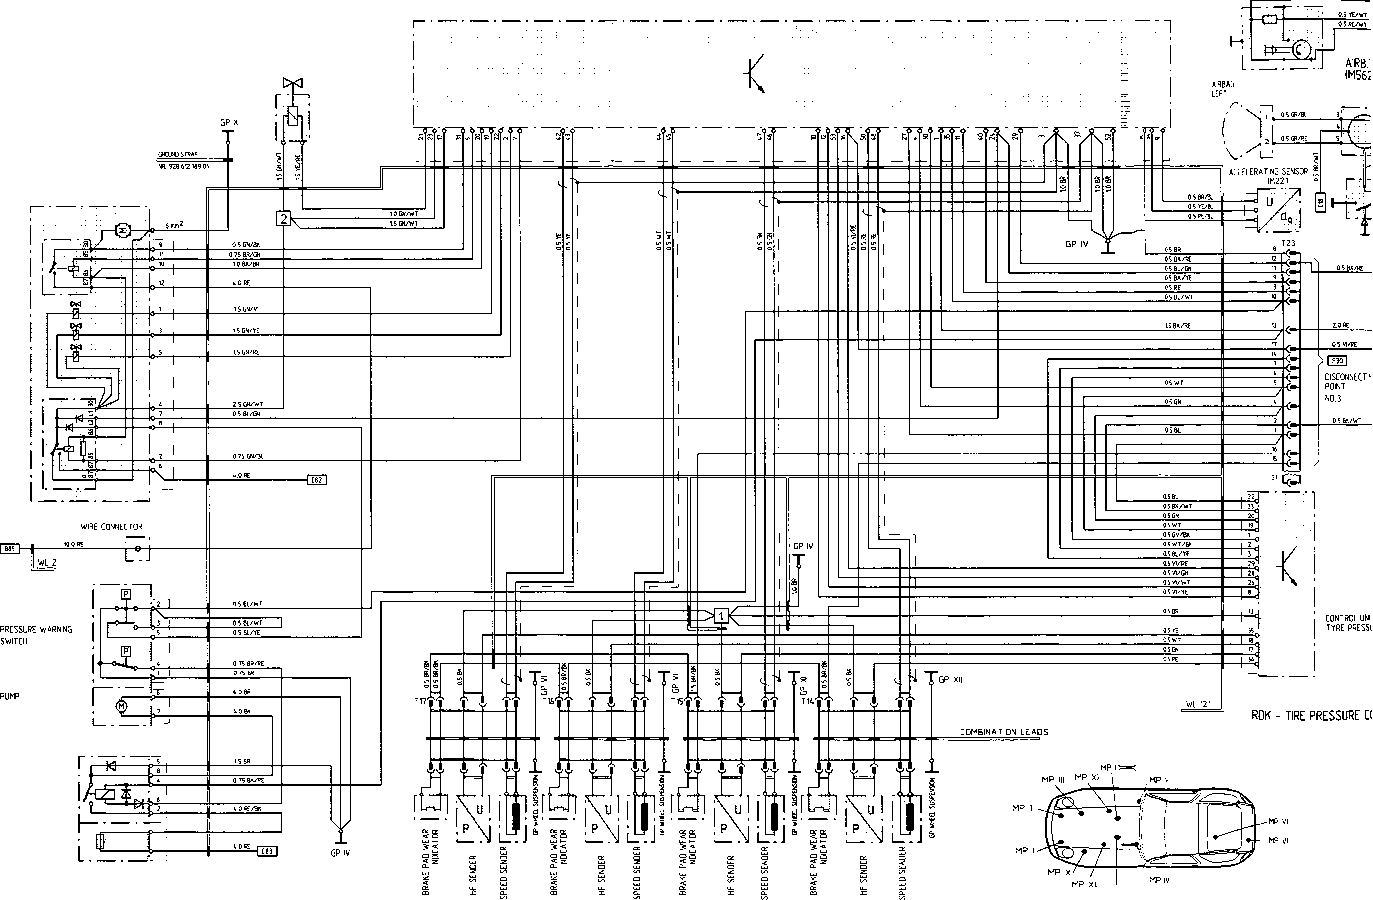 porsche alarm wiring diagram e39 alarm wiring diagram s model 91 sheet - flow diagram - porsche archives